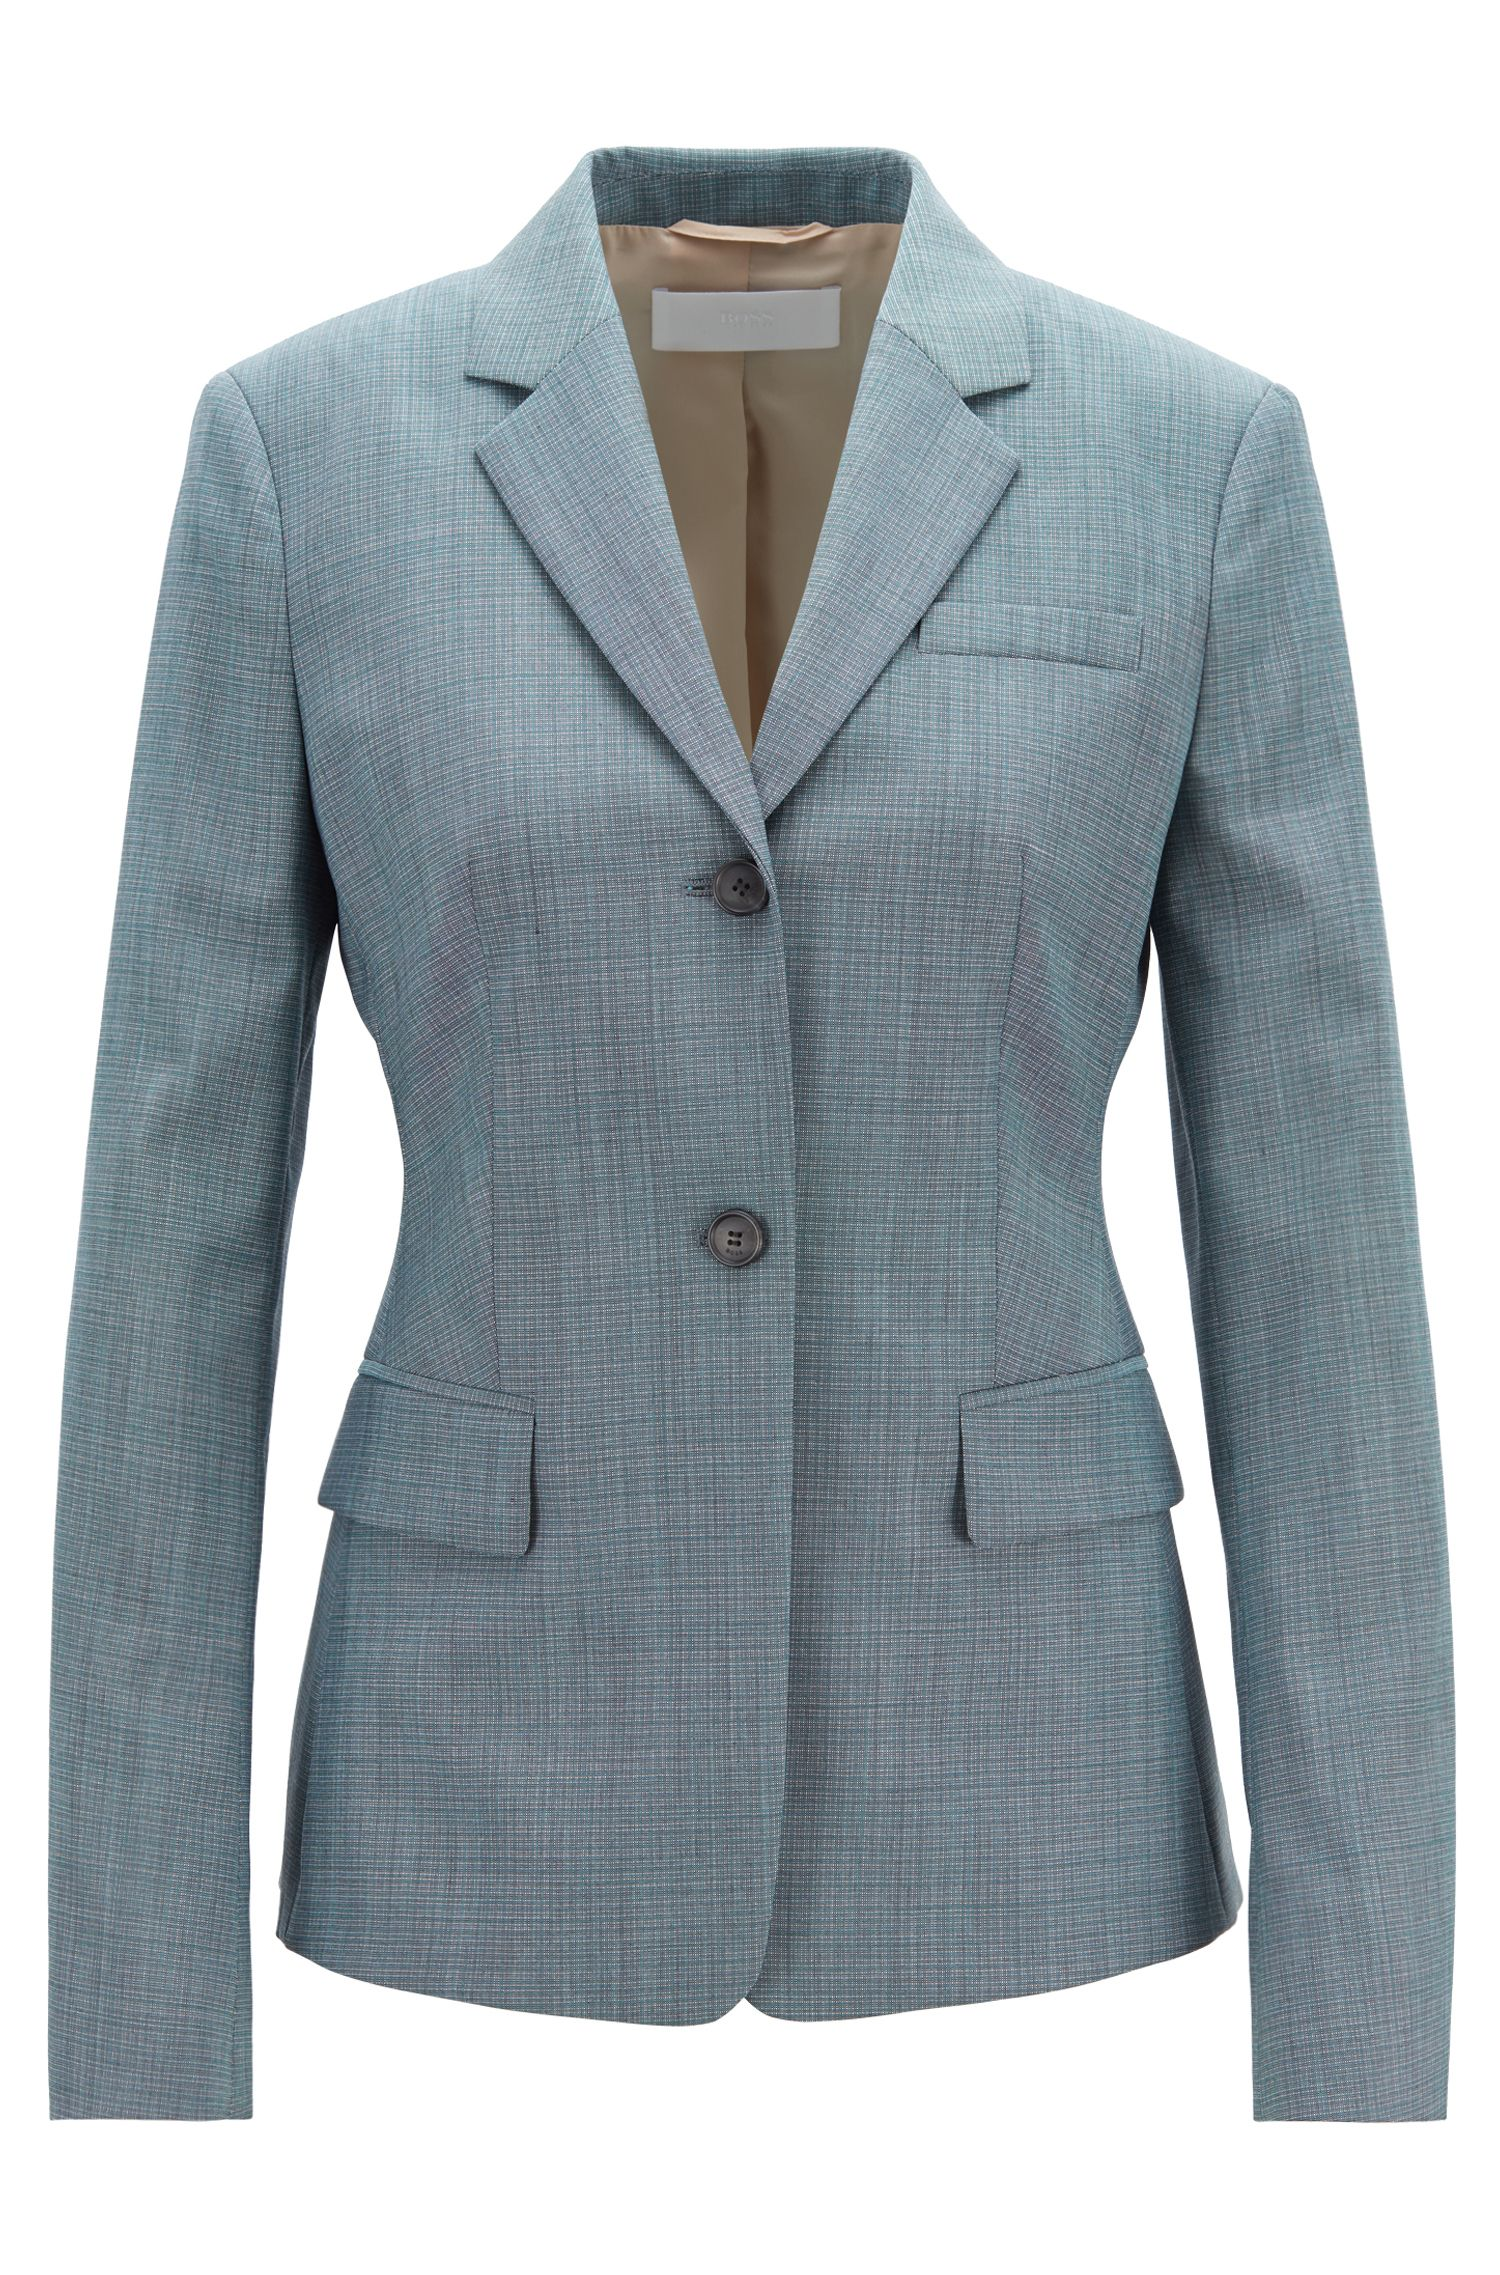 Regular-fit jacket in patterned Italian wool, Patterned